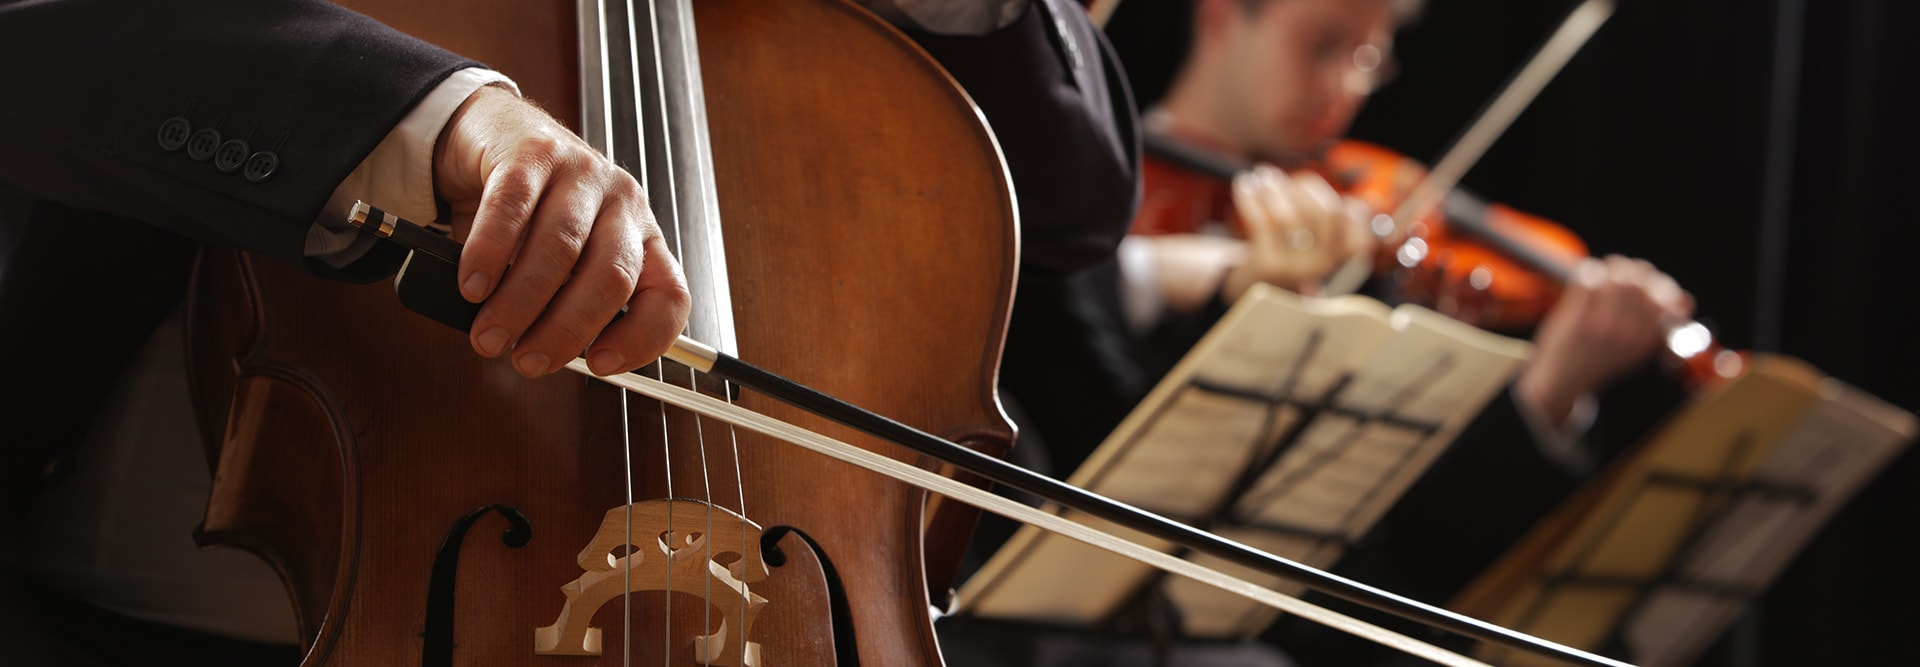 learn to play cello, how to play cello, cello lessons